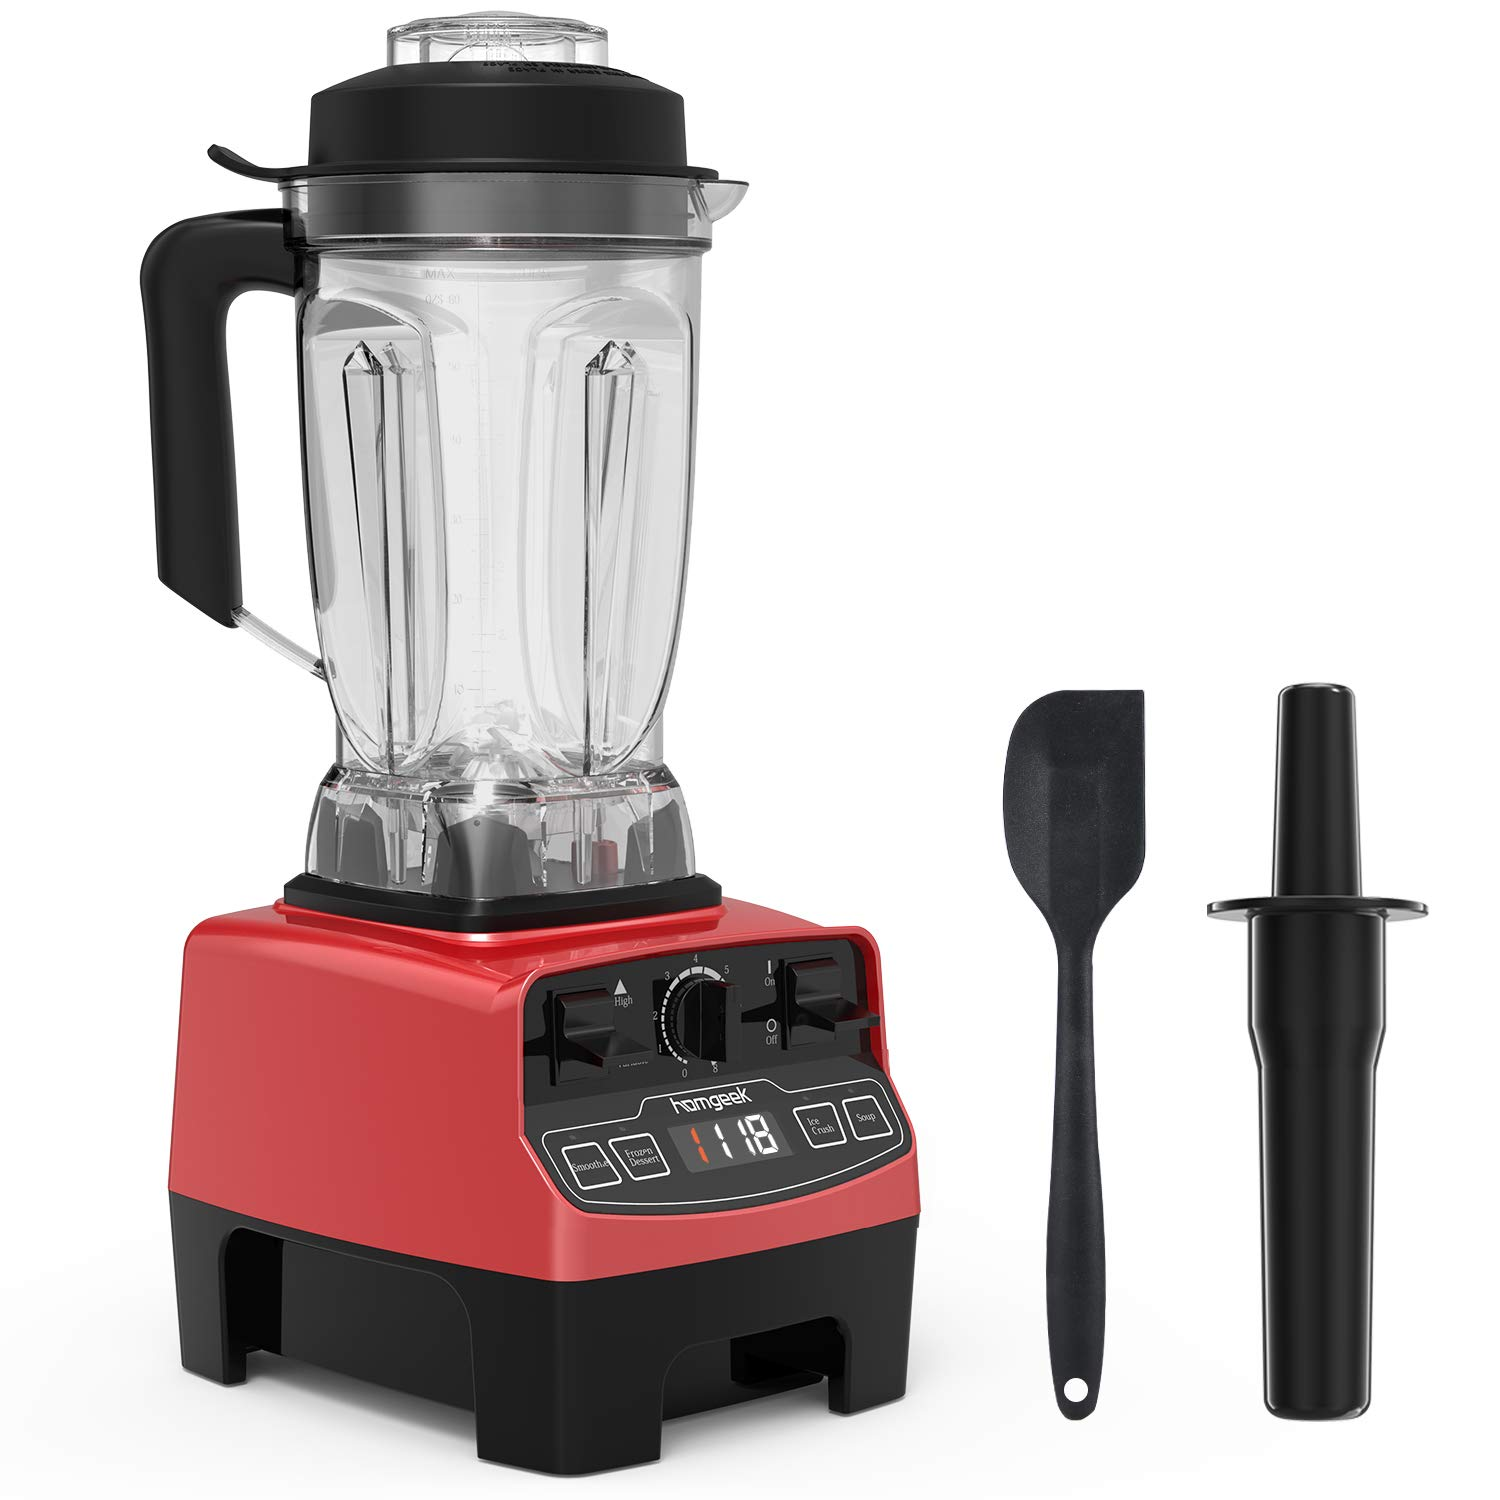 Homgeek Professional Blender, Countertop Blender 1450W, High Power Blender with High Speed, Built-in Timer, Smoothie Maker 68 oz for Crusing Ice, Frozen Desser, Soup